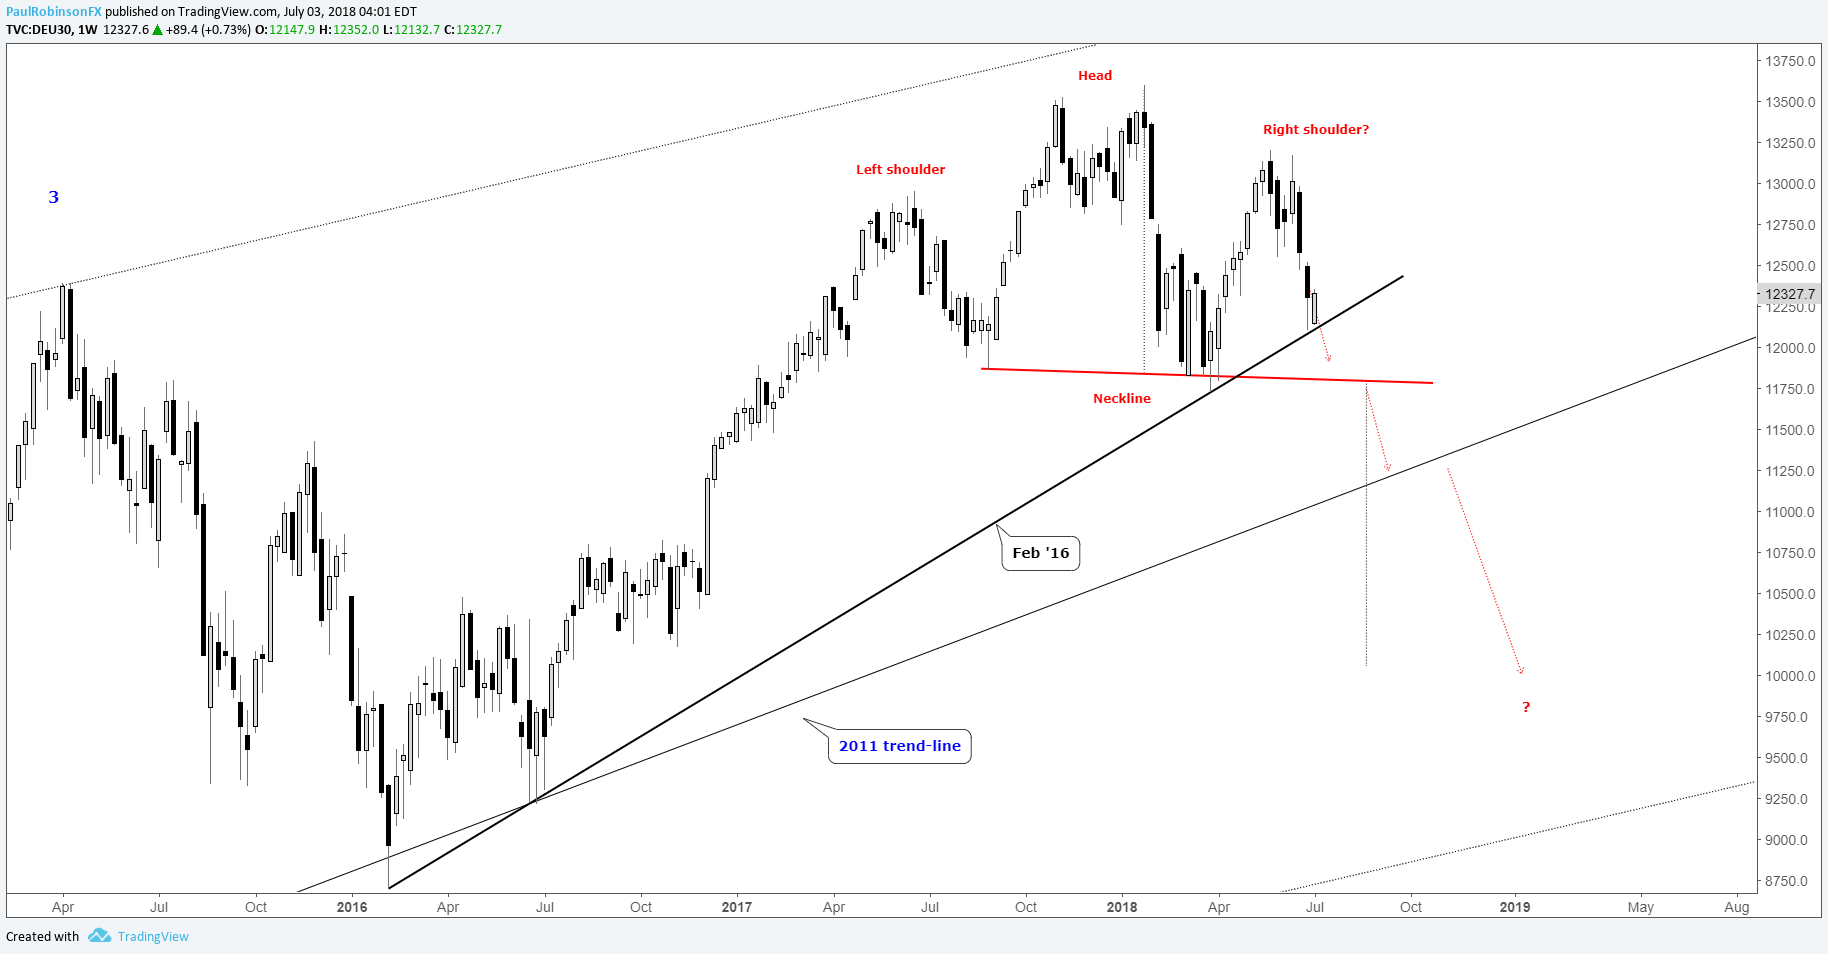 DAX Technical Analysis - Stepping Closer and Closer to the Edge